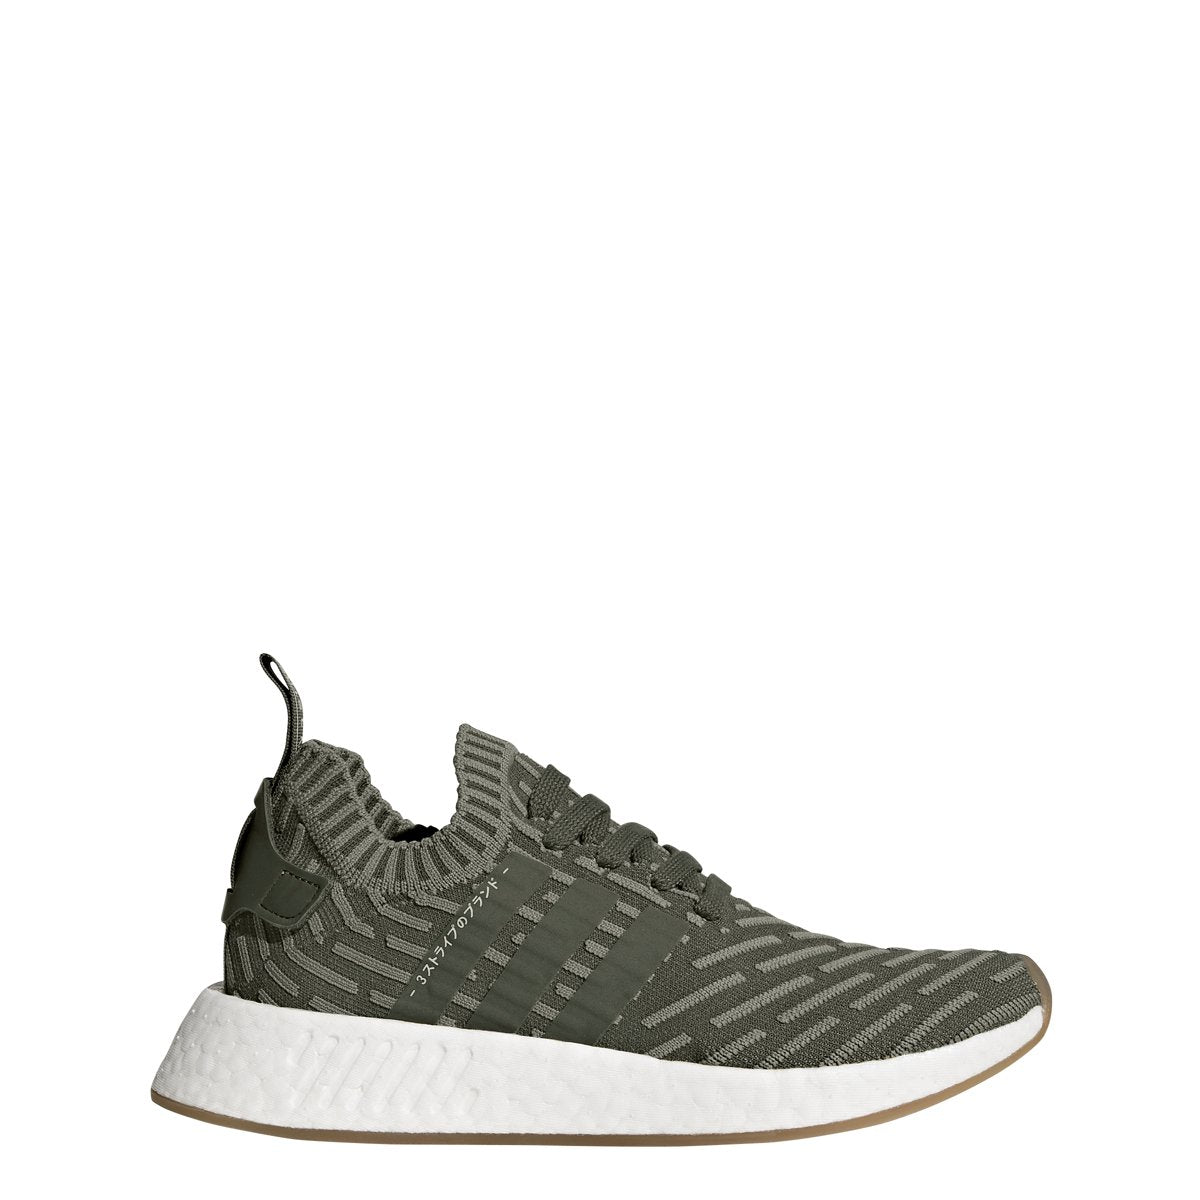 [BY9953] Womens NMD_R2 PK W